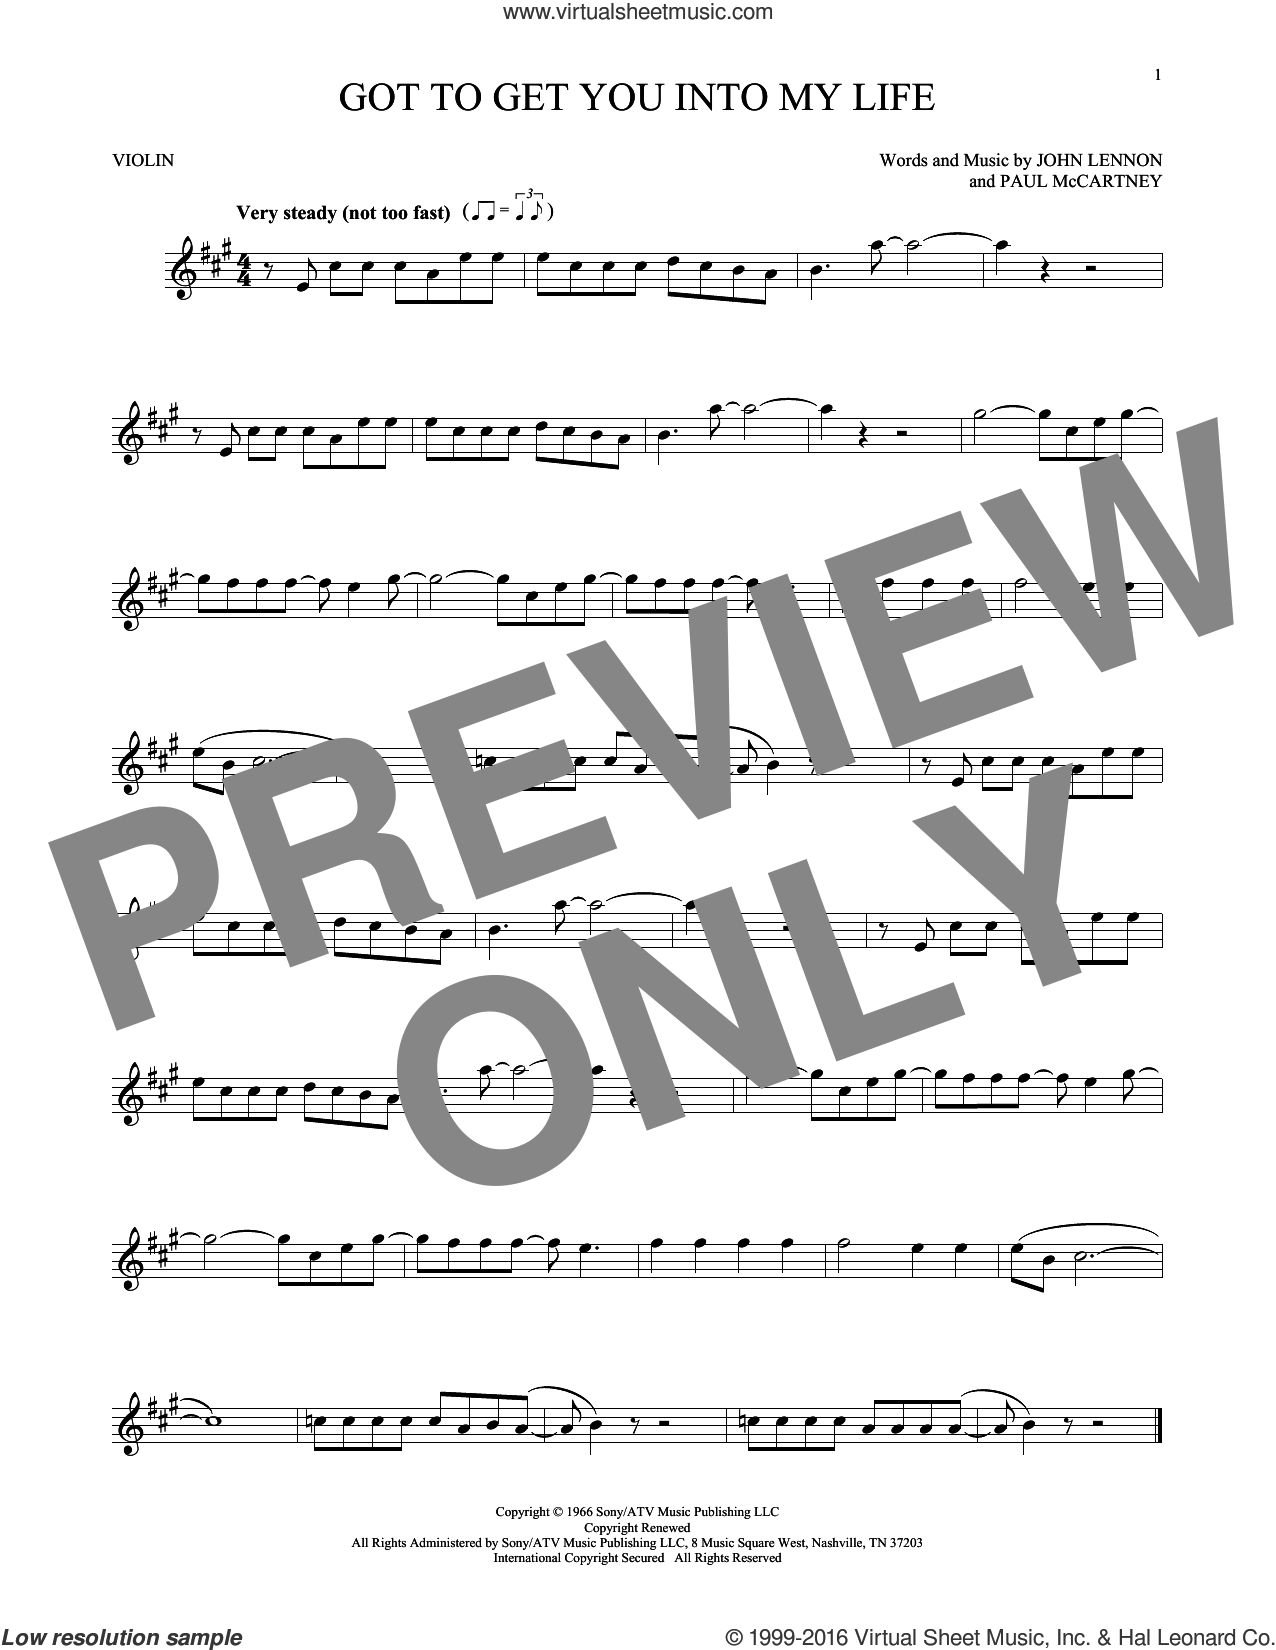 Got To Get You Into My Life sheet music for violin solo by The Beatles, John Lennon and Paul McCartney, intermediate skill level